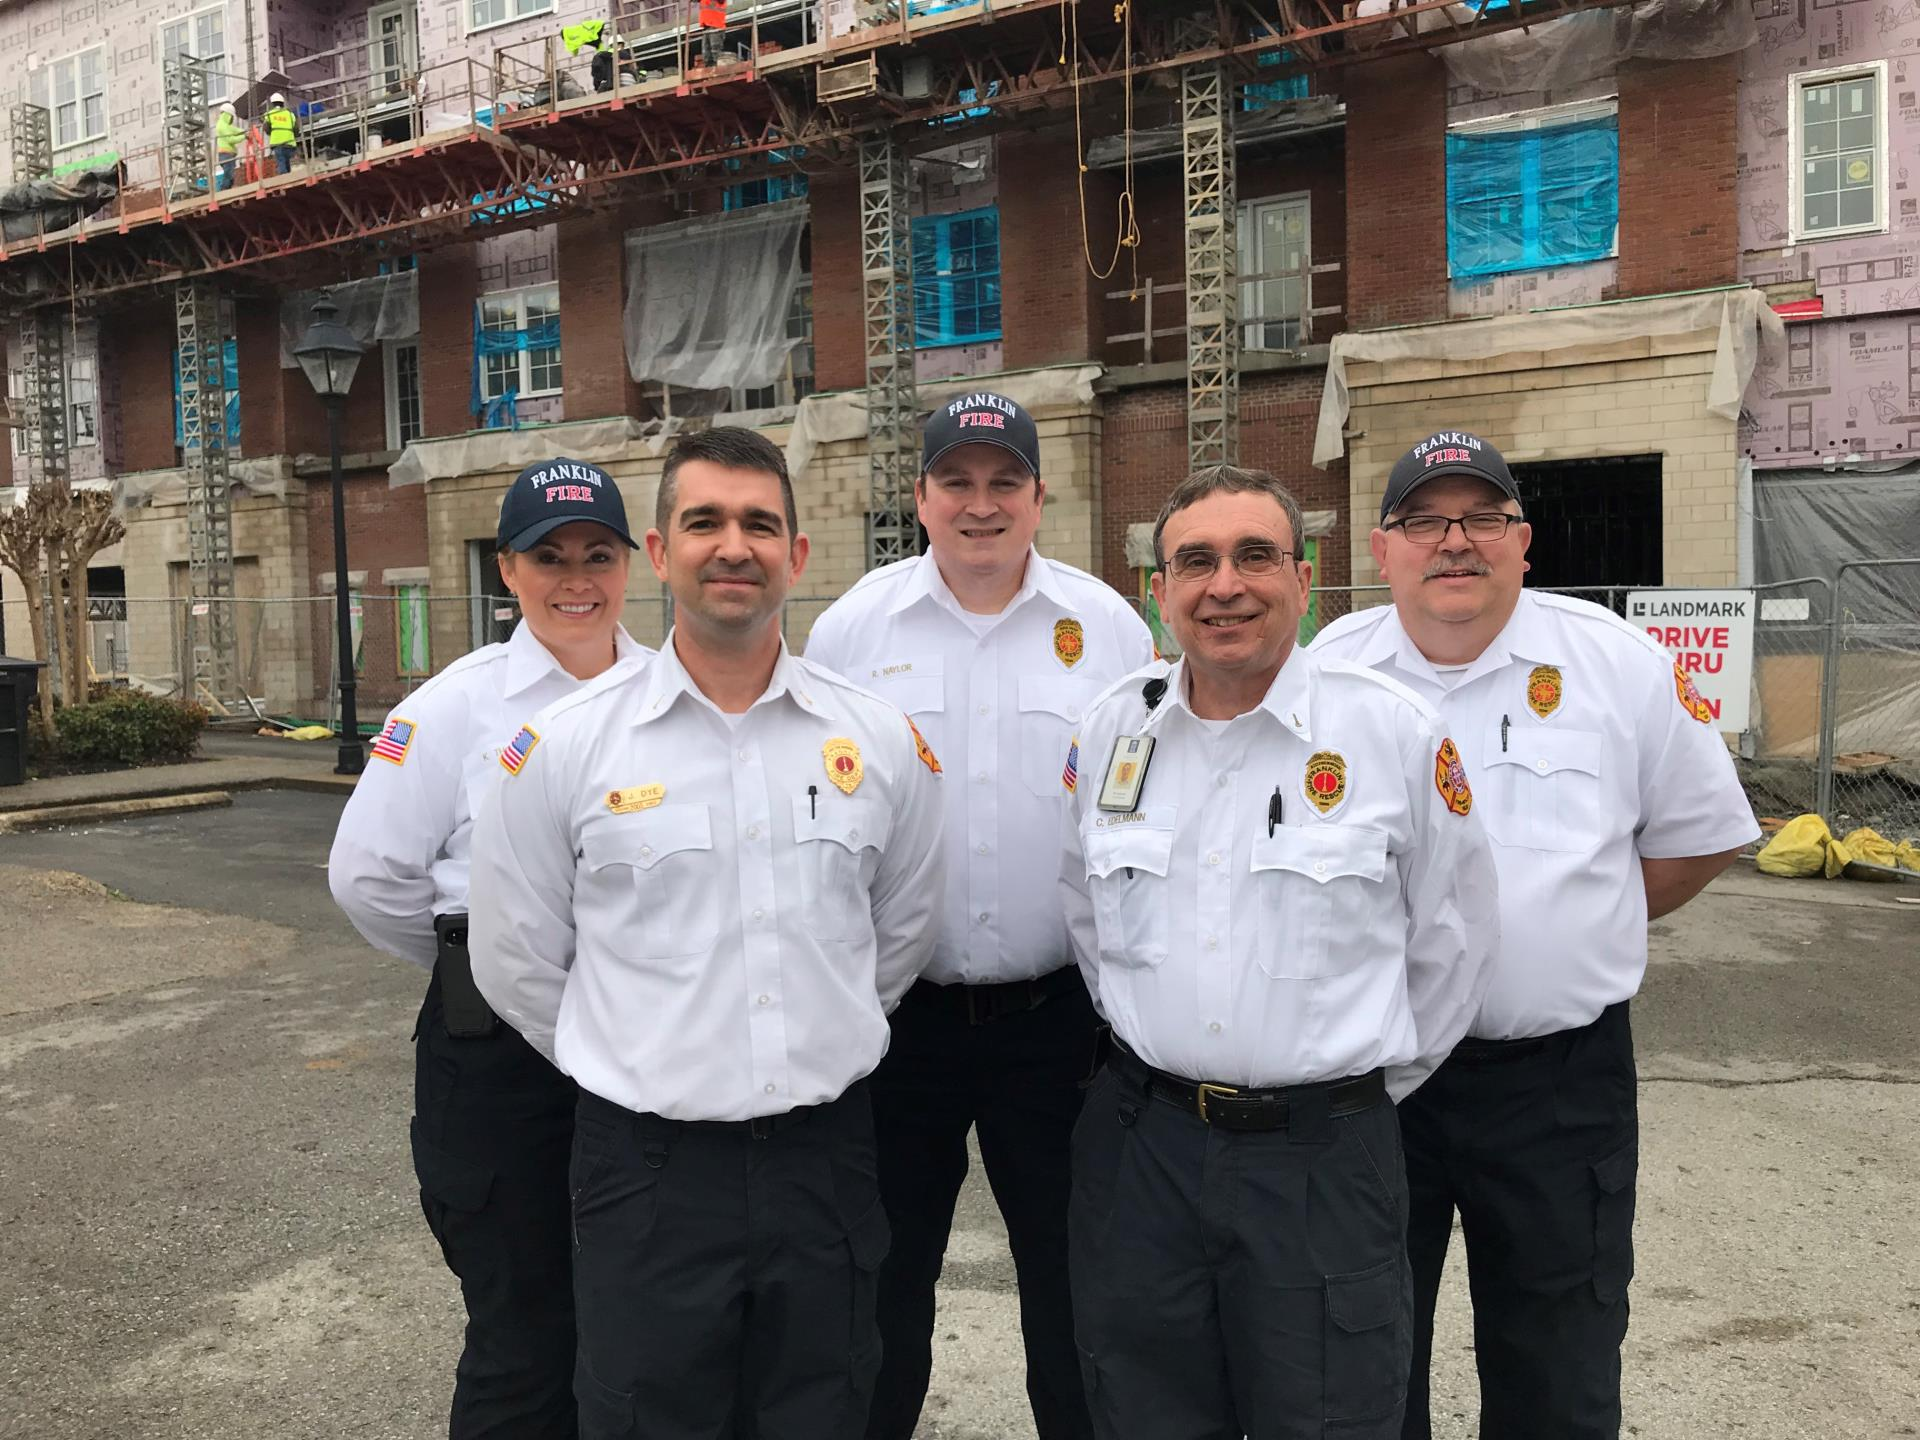 Franklin Fire Inspectors